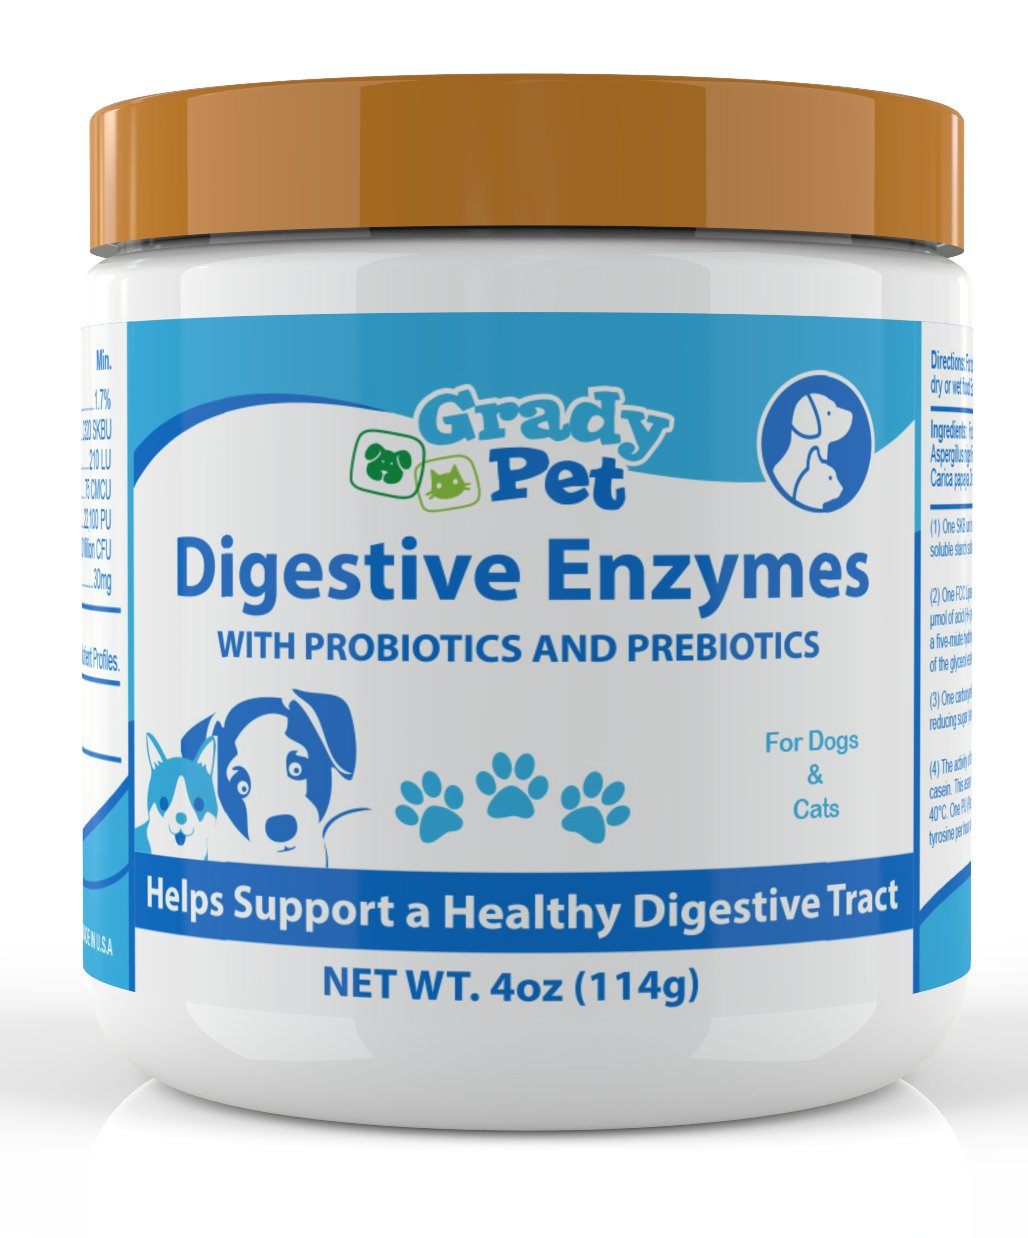 Probiotics Plus Prebiotics and Digestive Enzymes for Dogs and Cats: Digestive Remedy, Vomiting, Allergie,Itch Relief and Loose Stool Formula